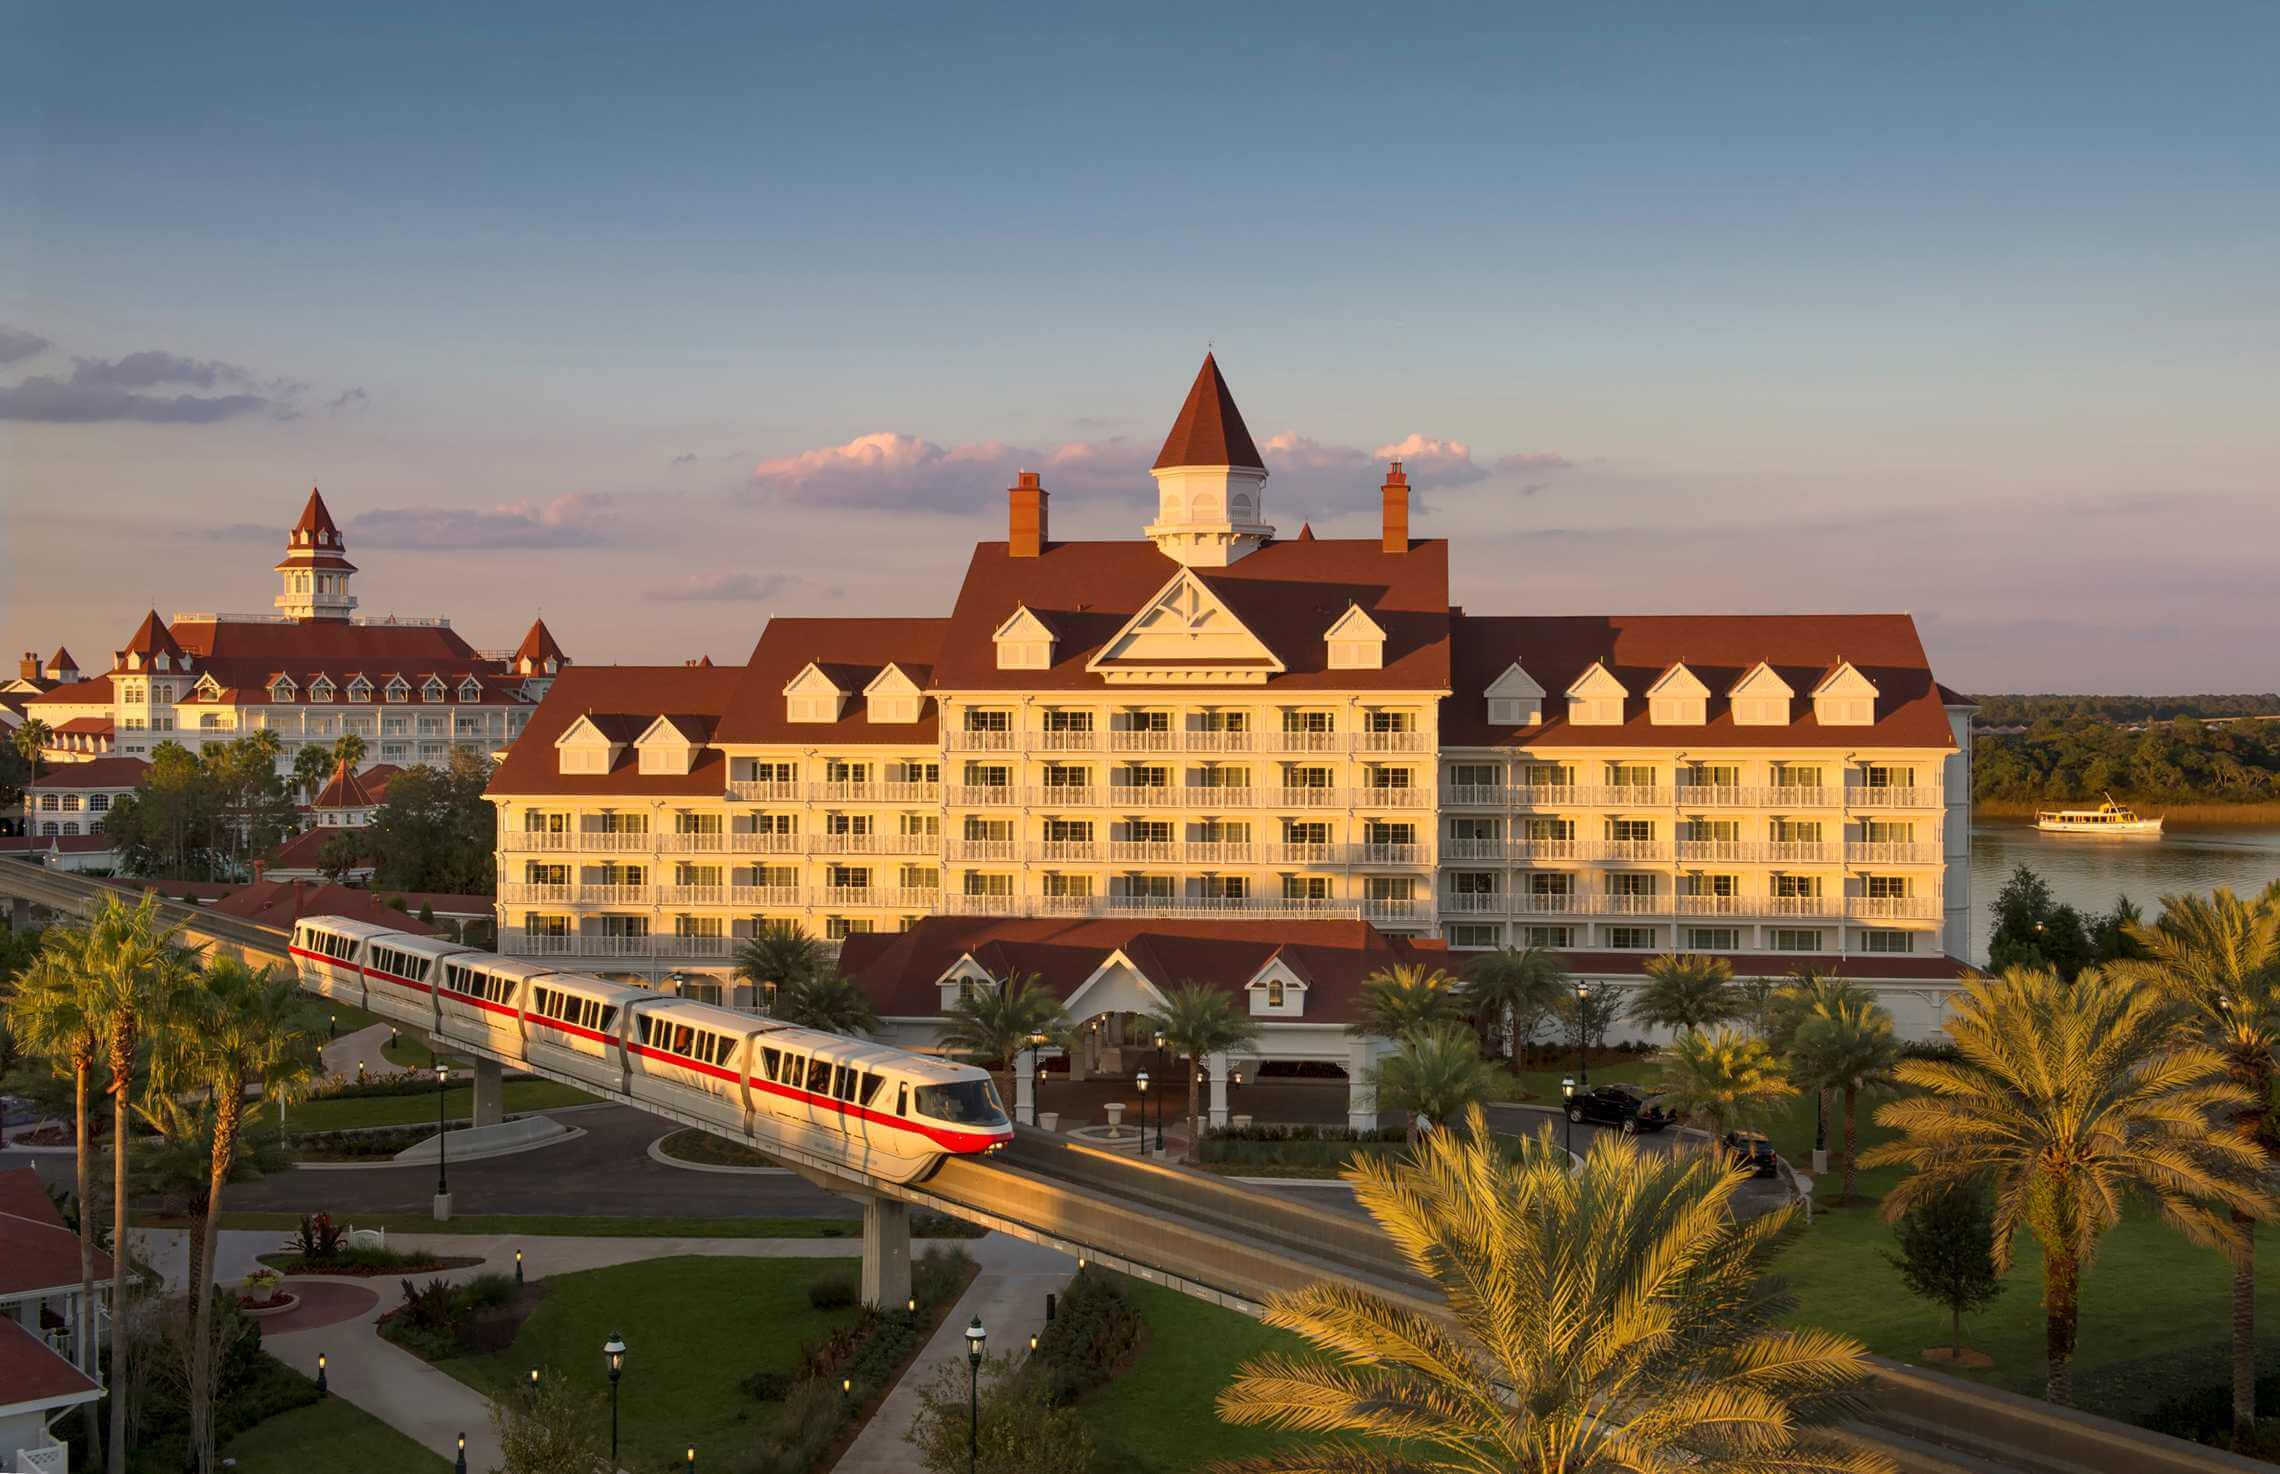 The Villas at Disney's Grand Floridian Resort Spa em Orlando